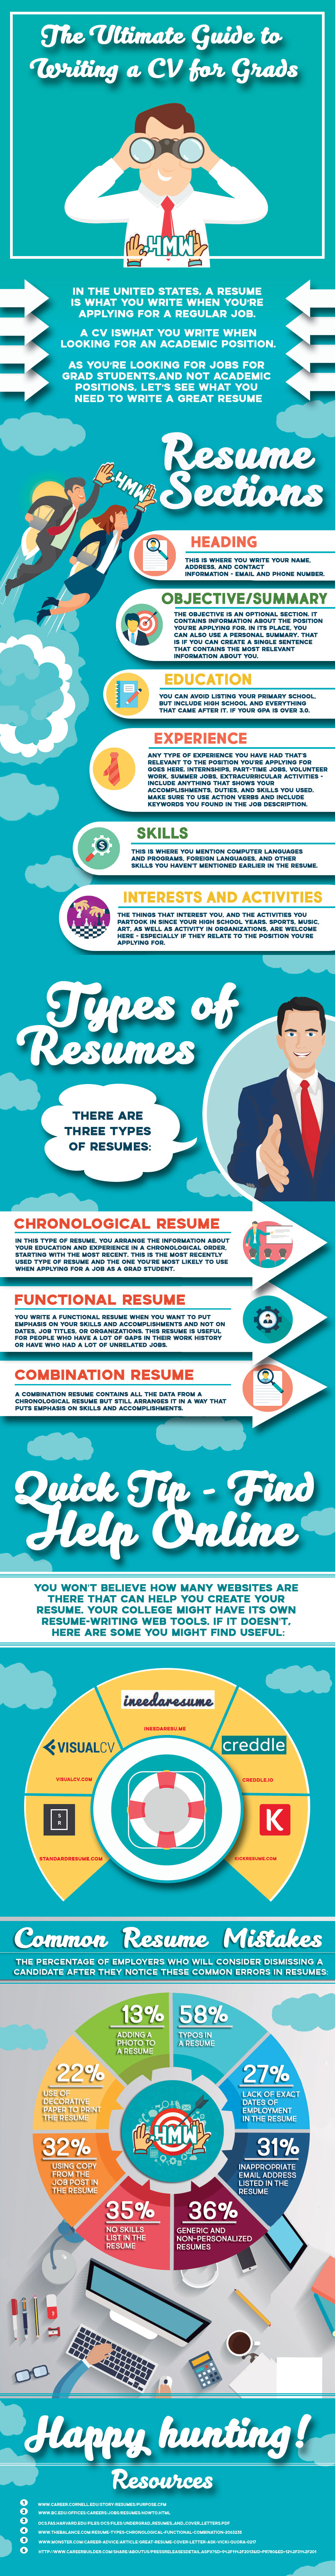 The Grad's Ultimate Guide for Writing a CV - Image 1